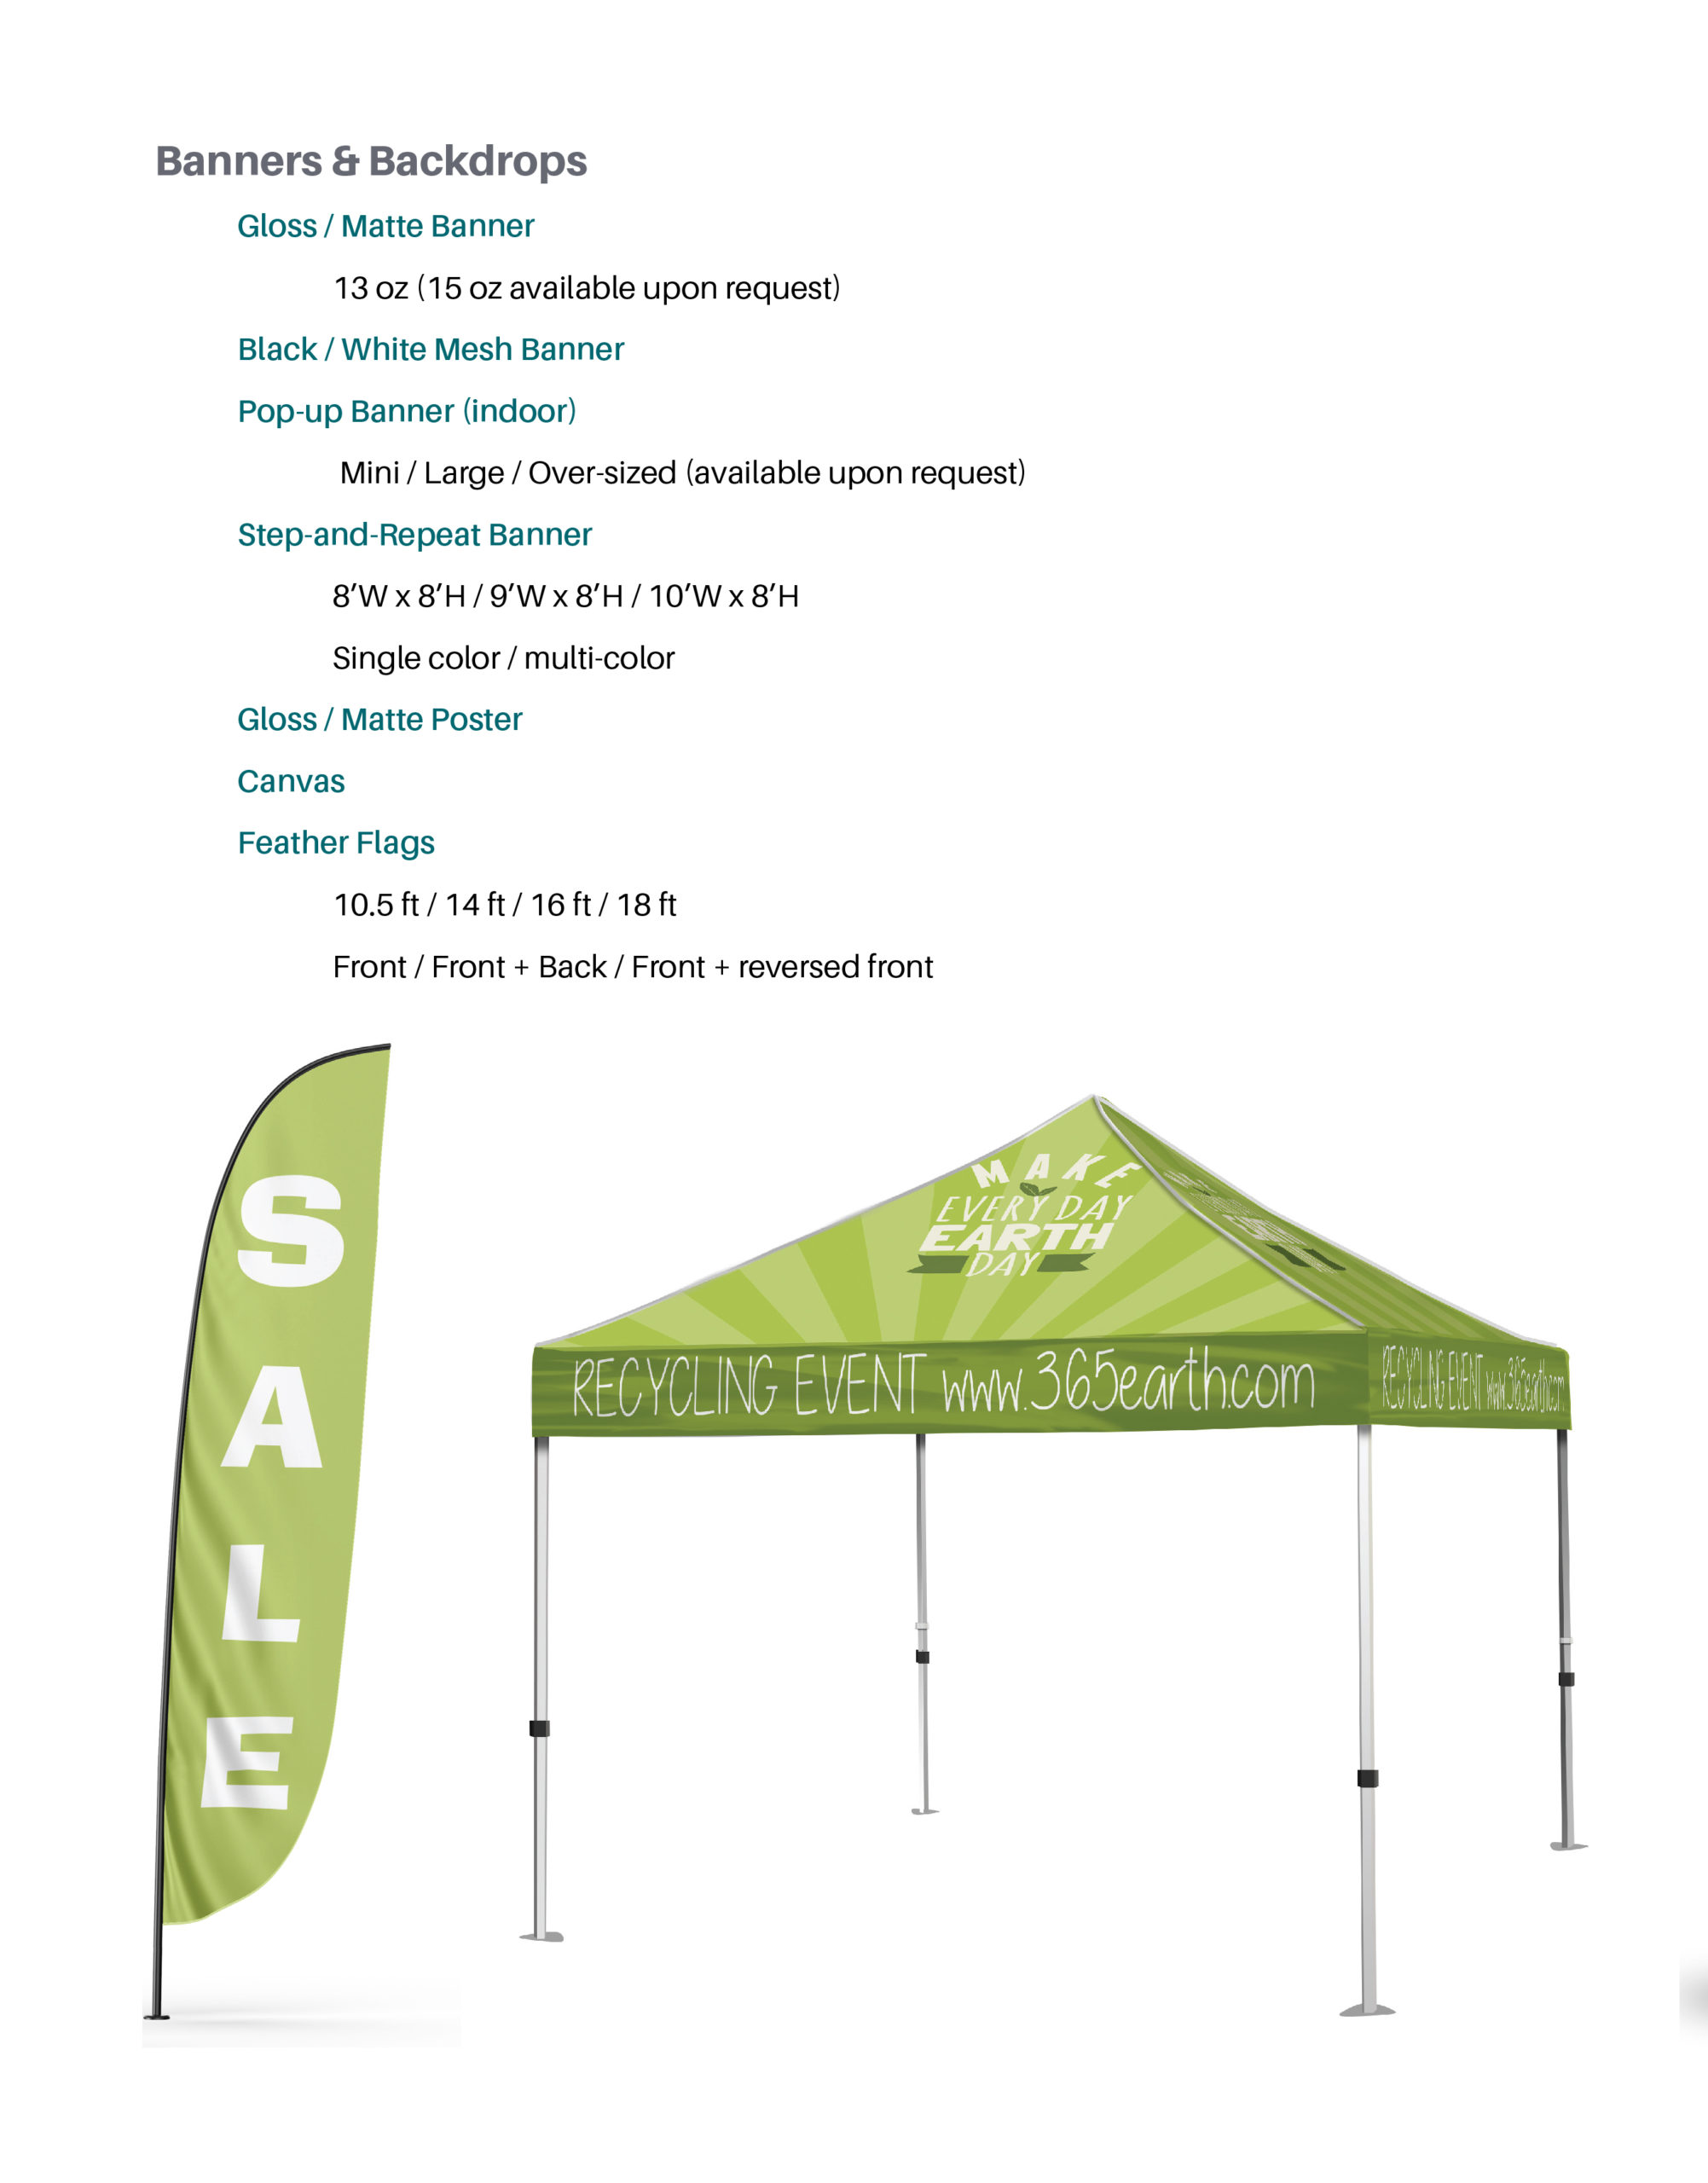 Banners and Backdrops with product details